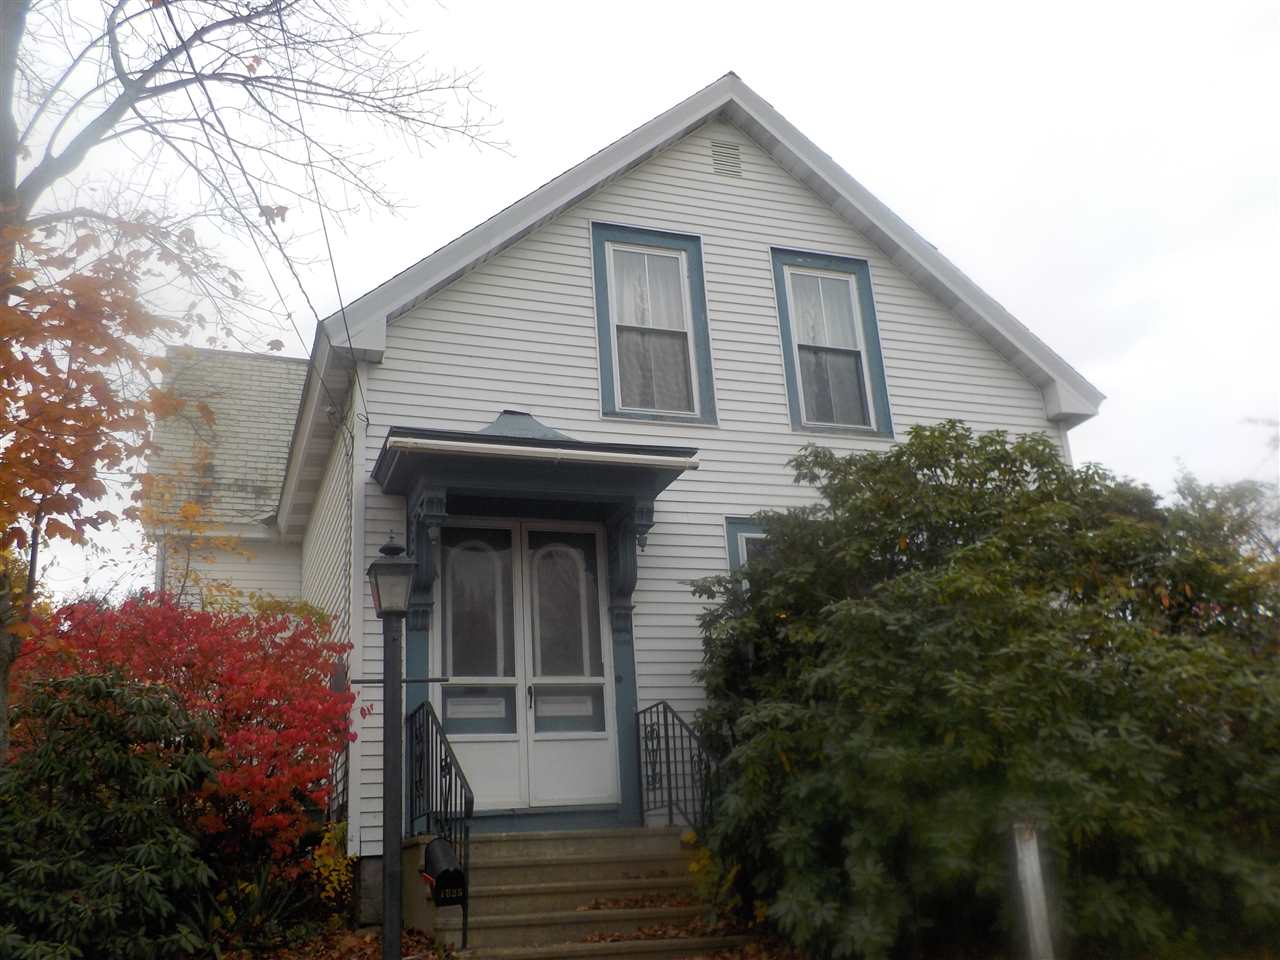 Photo of 1025 Hanover Street Manchester NH 03104-5505